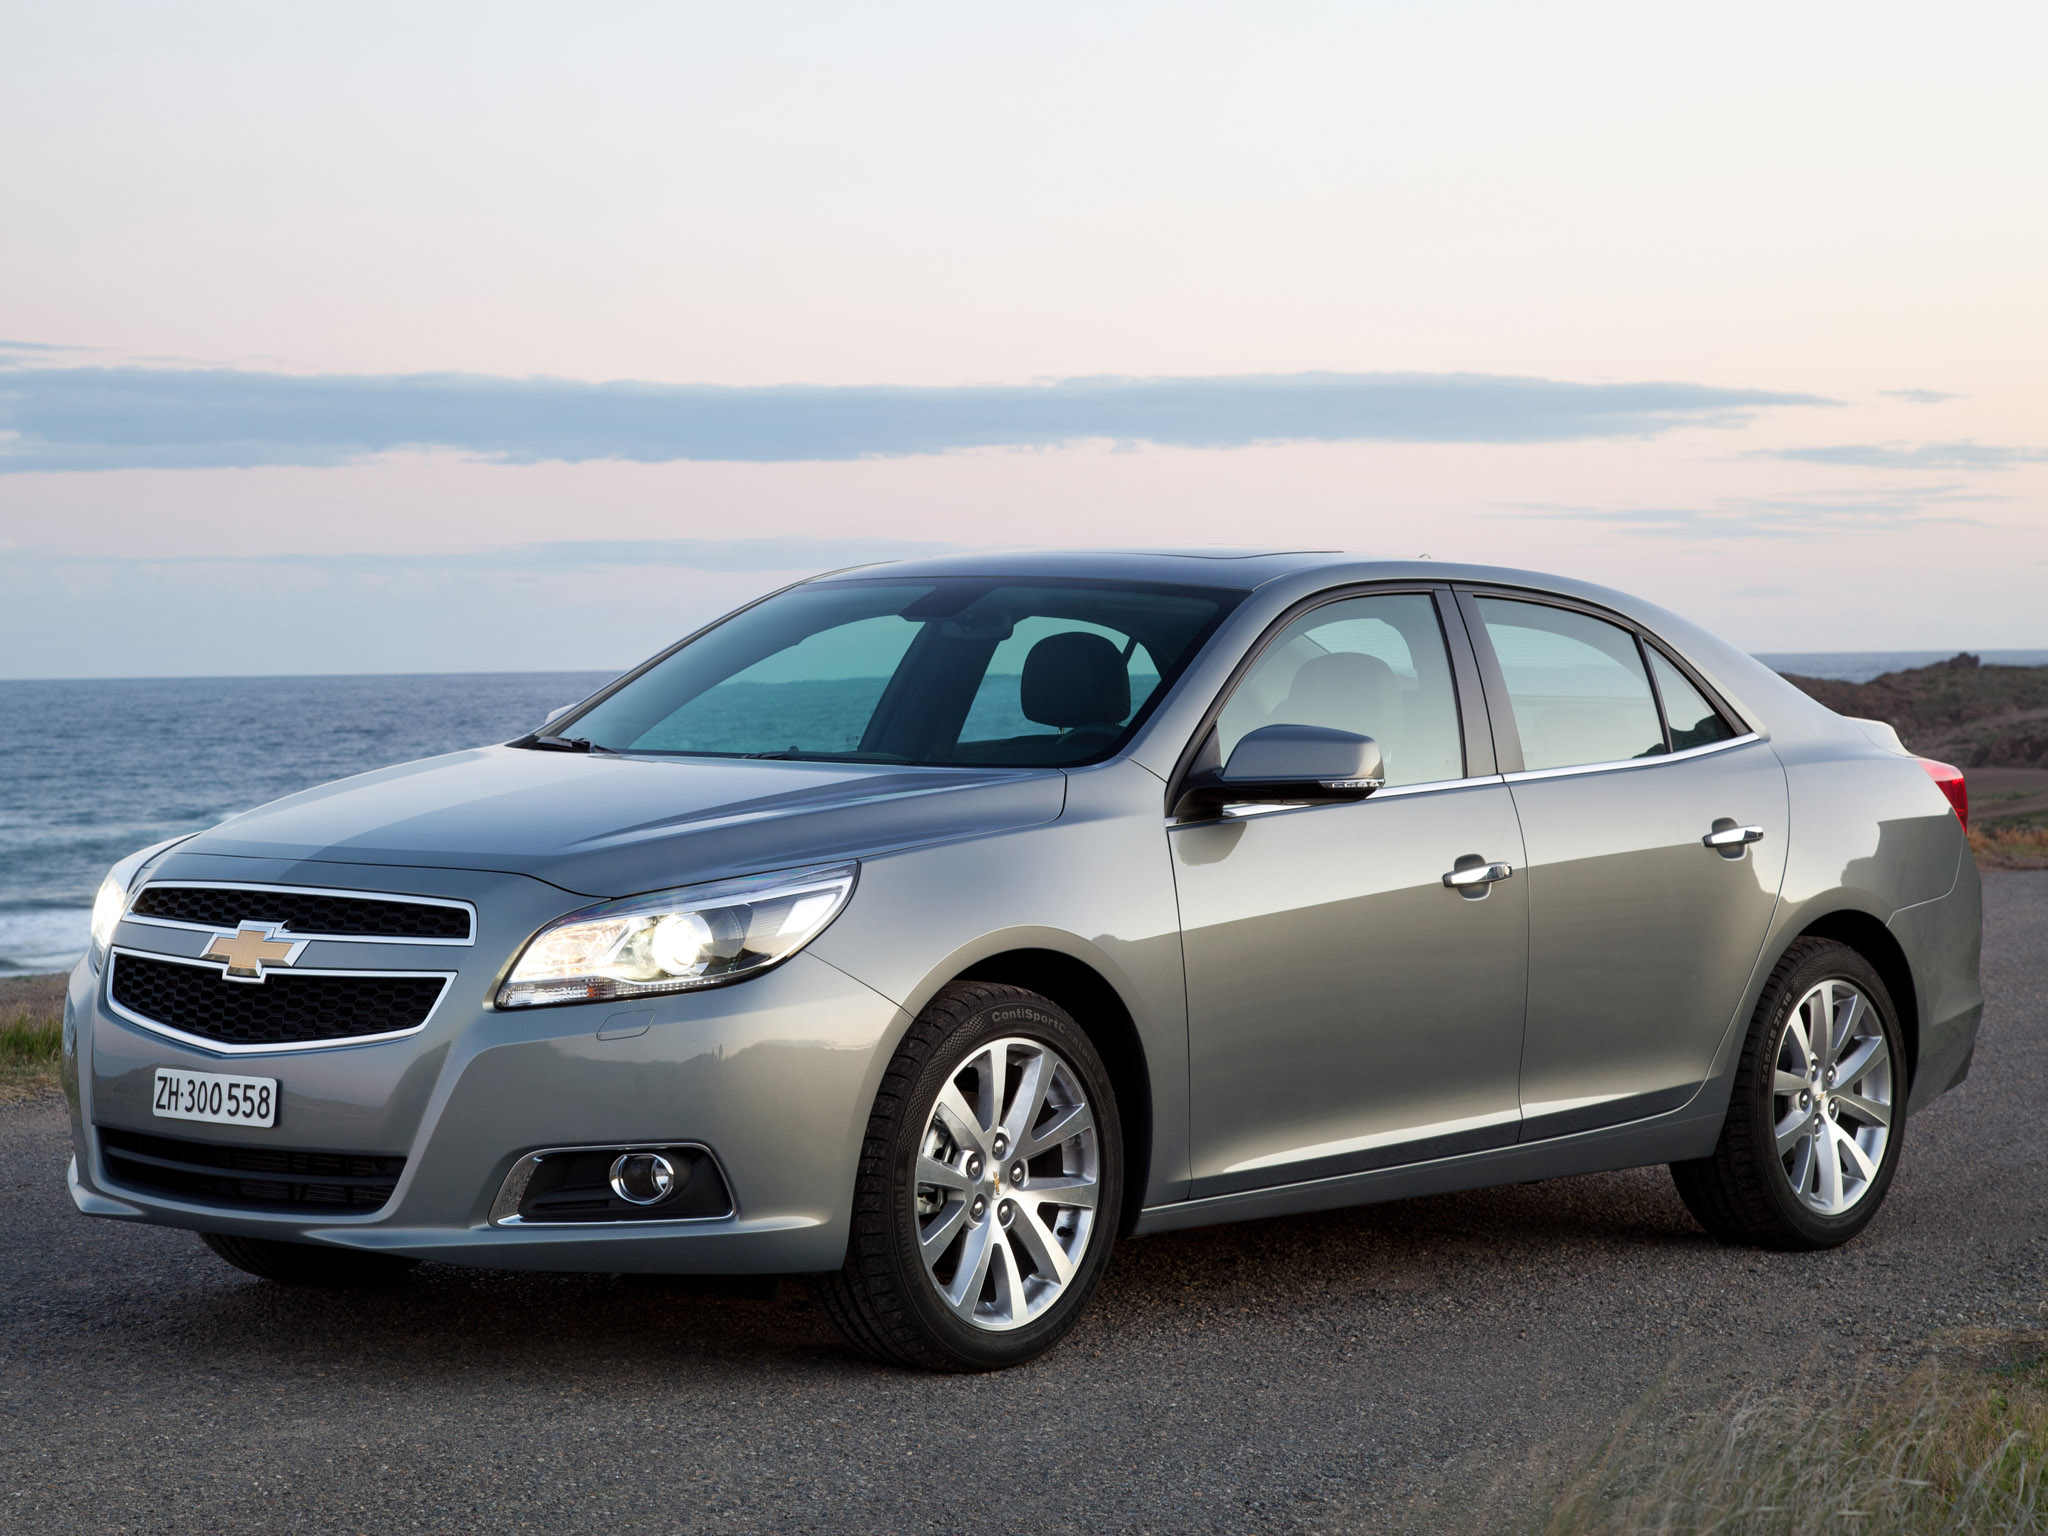 2012 chevrolet malibu pictures information and specs auto. Black Bedroom Furniture Sets. Home Design Ideas